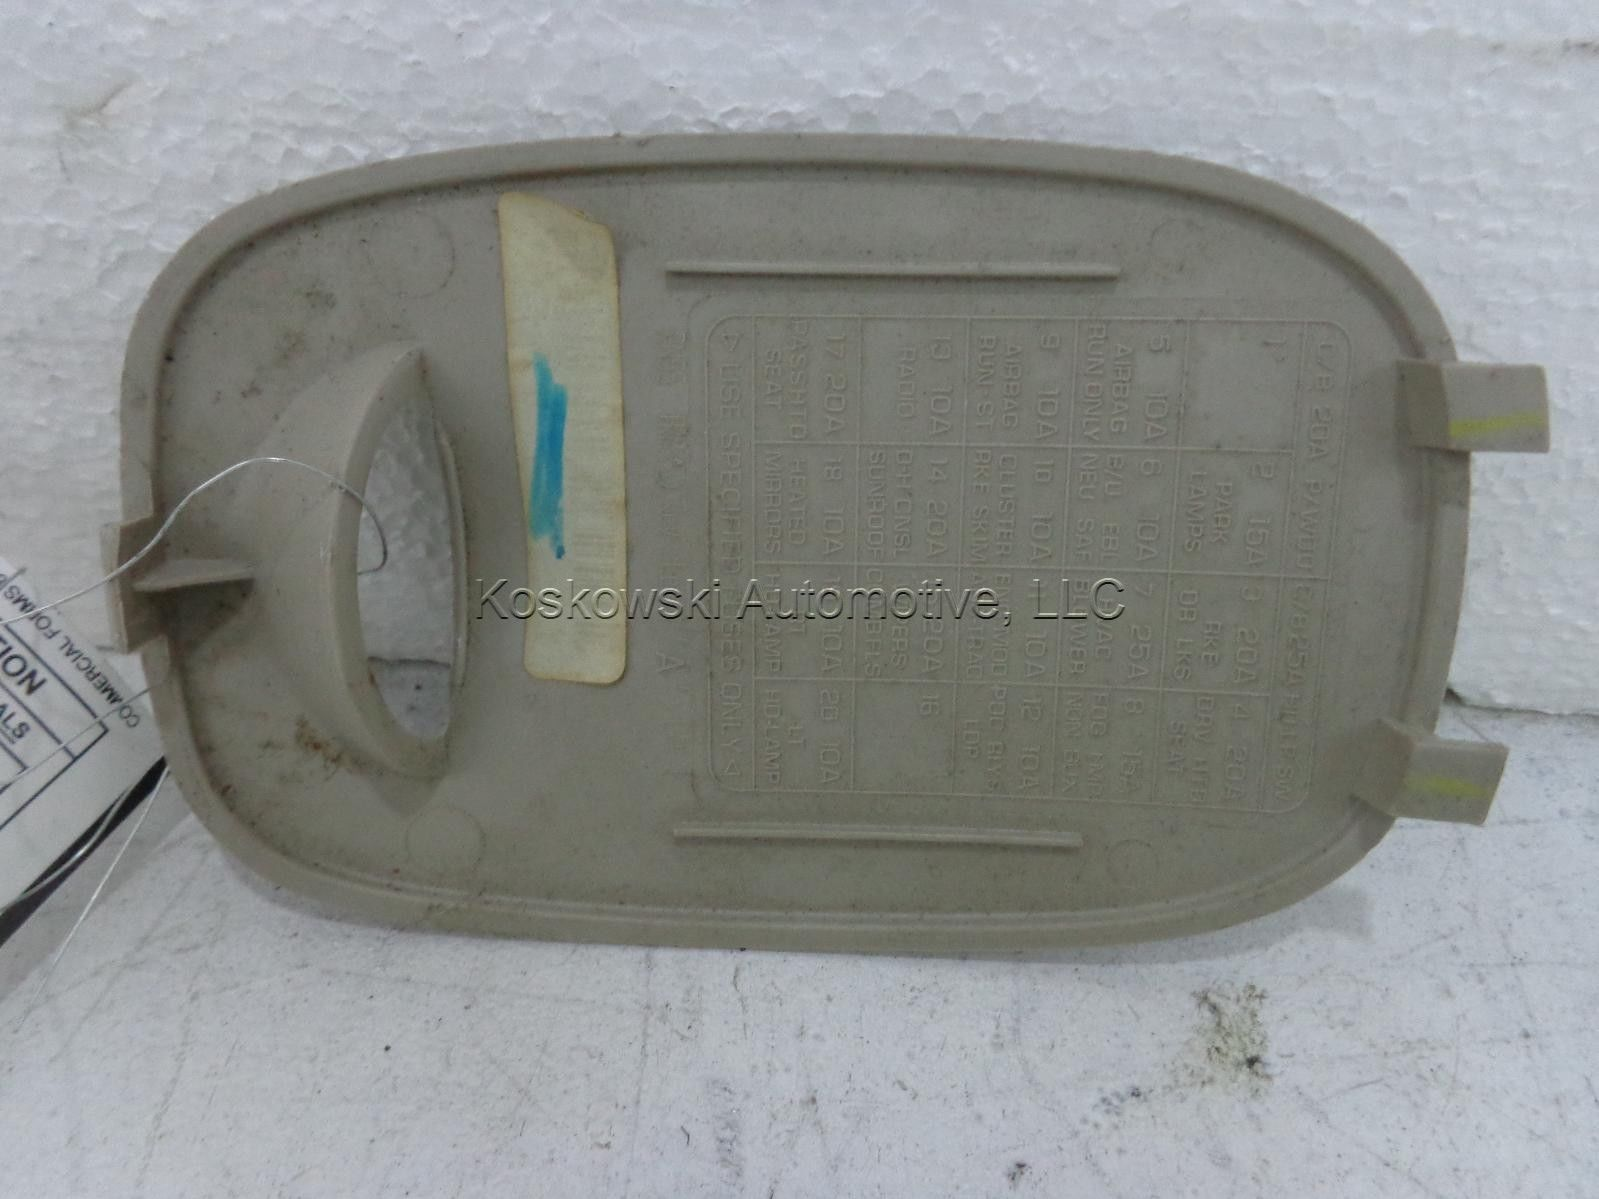 fuse panel cover pt cruiser dash 2001 01 chrysler tan 07 PT Cruiser Fuse  Panel PT Cruiser Fuse Box Location